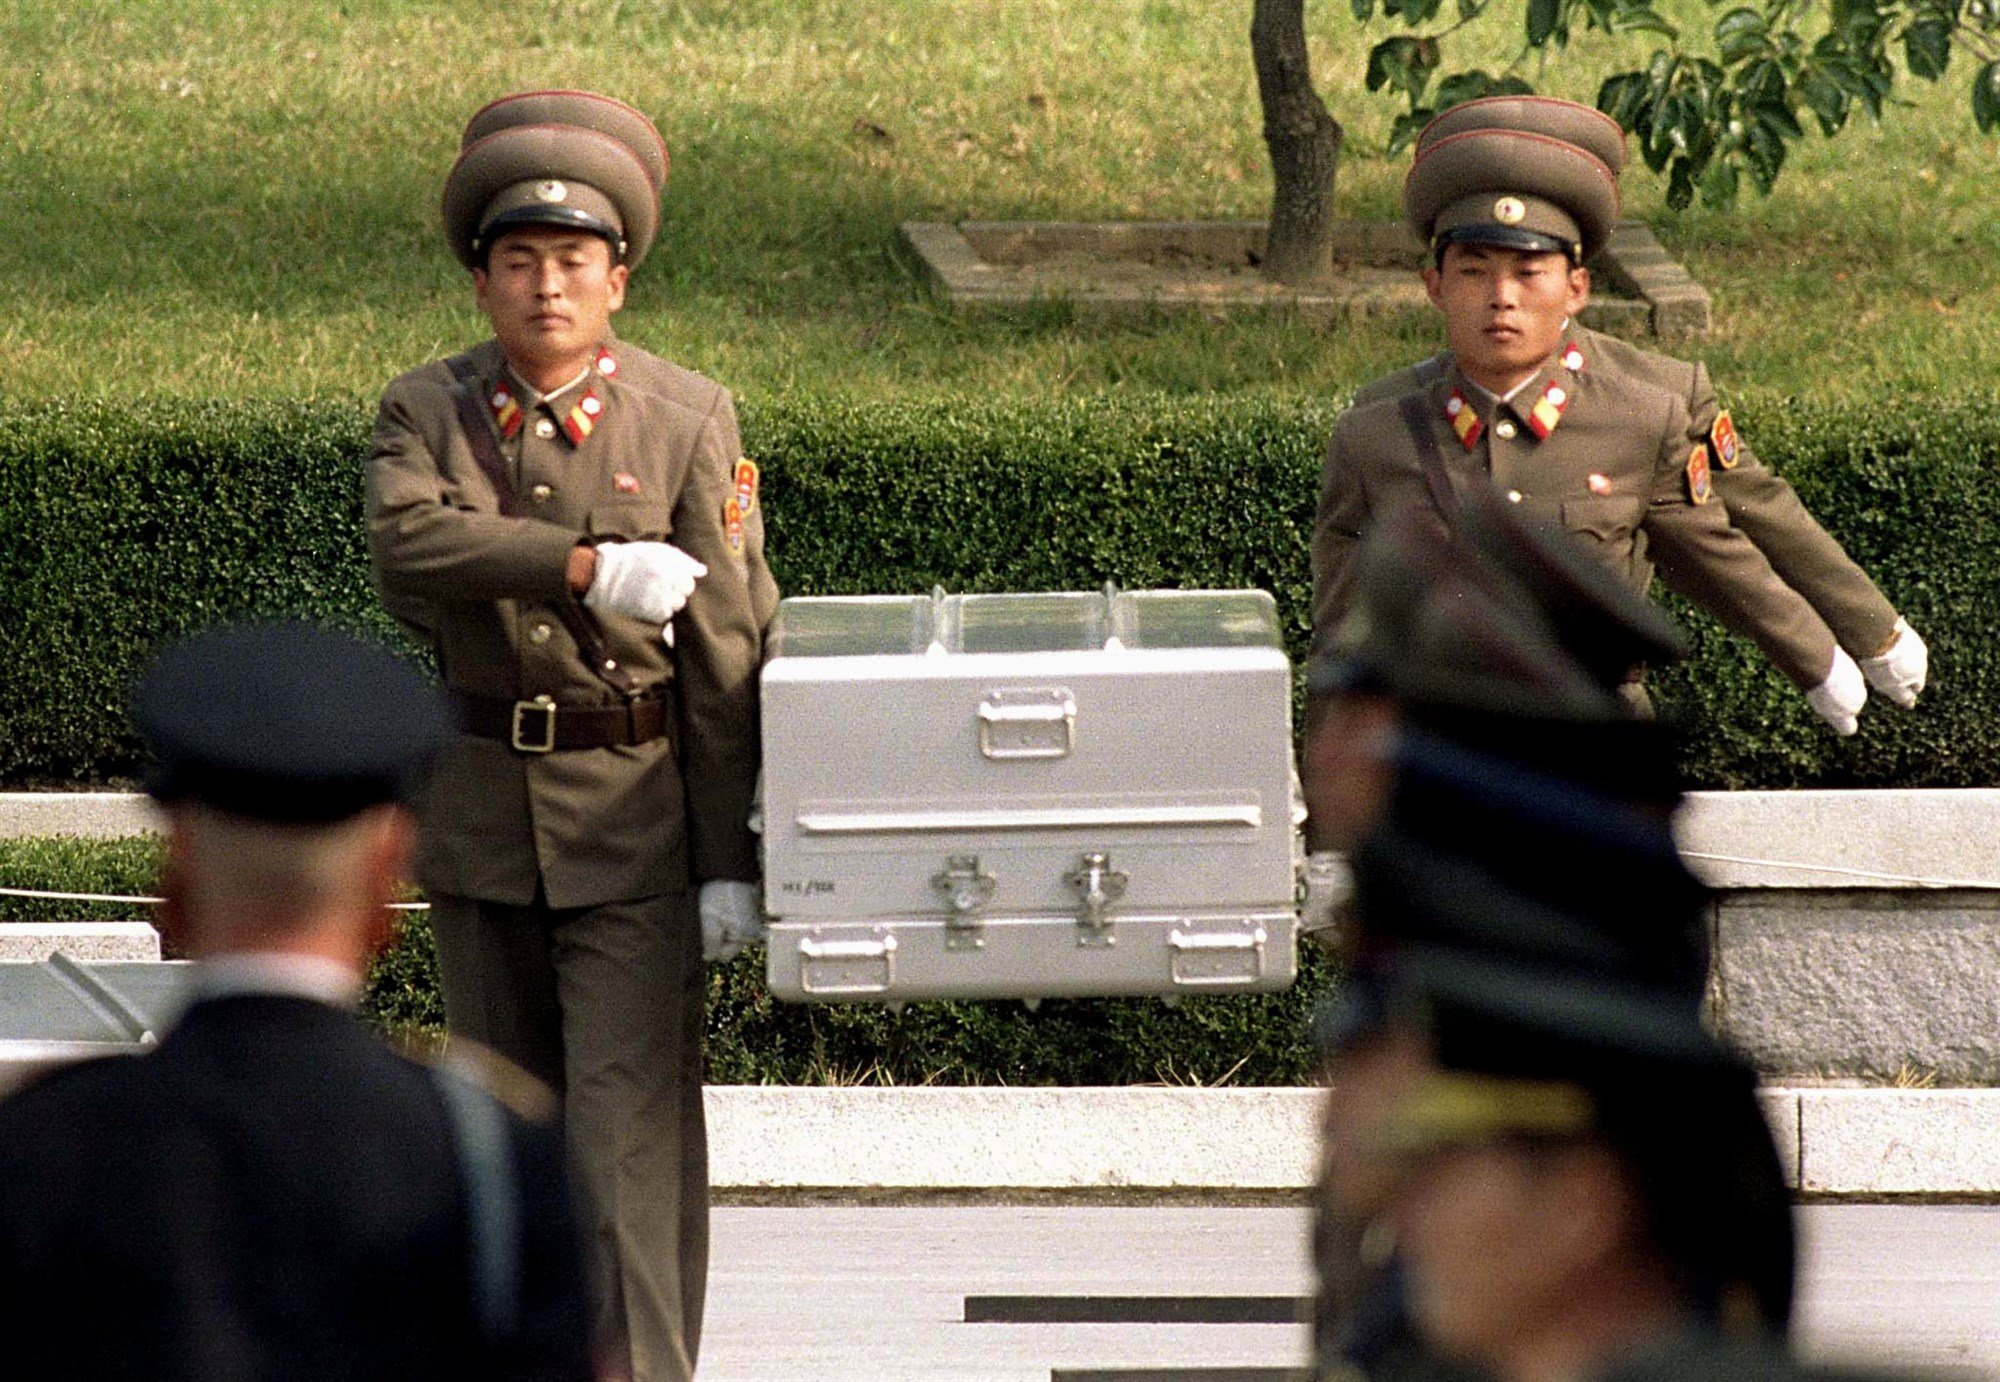 North Korean soldiers carry a coffin believed to contain the remains of a U.S. soldier to the border with South Korea during repatriation ceremonies at the truce village of Panmunjom, South Korea, in October 1998. (YUN SUK BONG / Reuters)